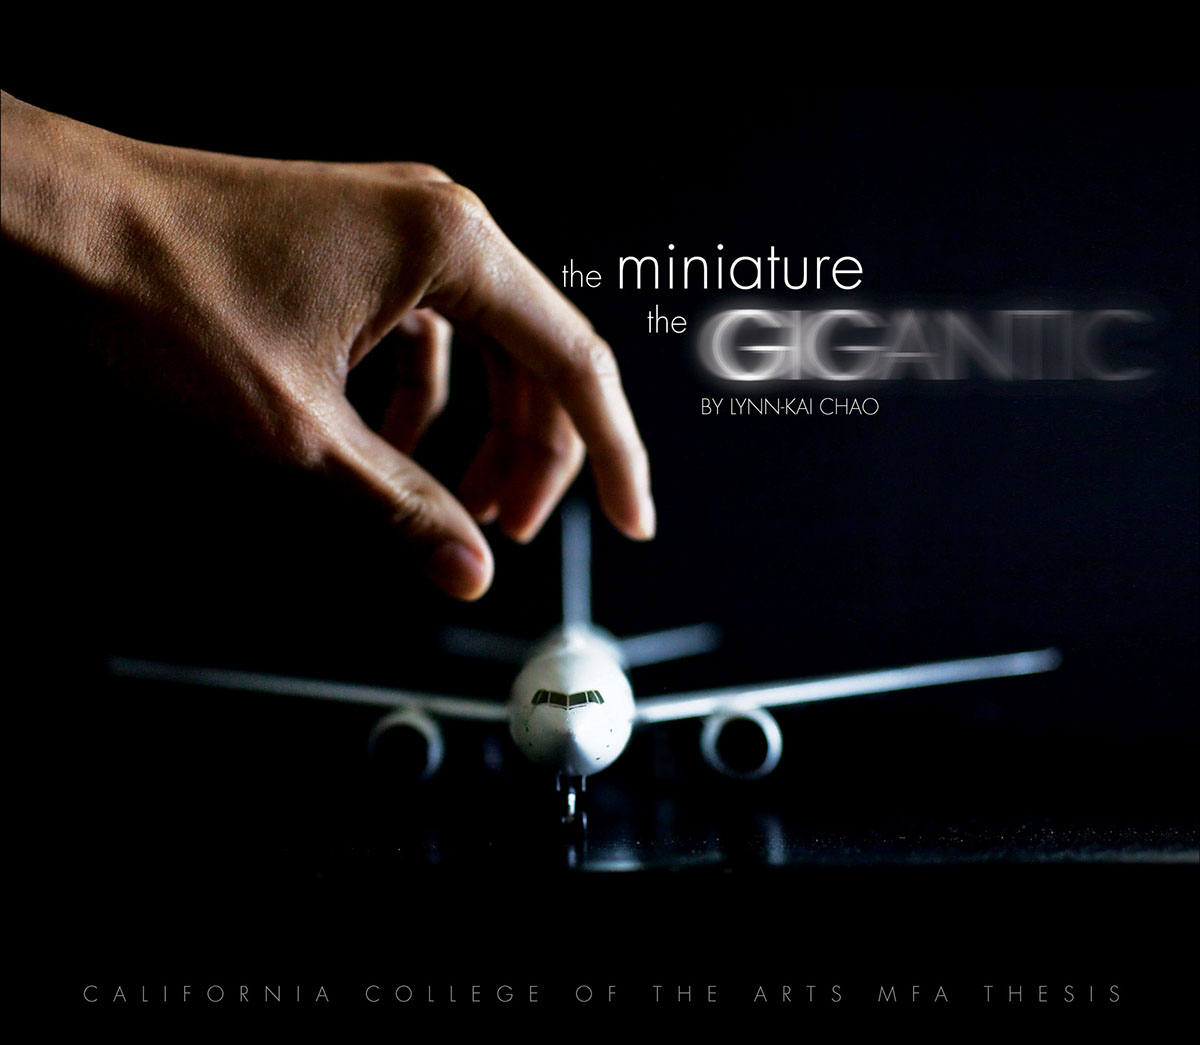 book design thesis miniatures Model Making miniature model making airplanes trains